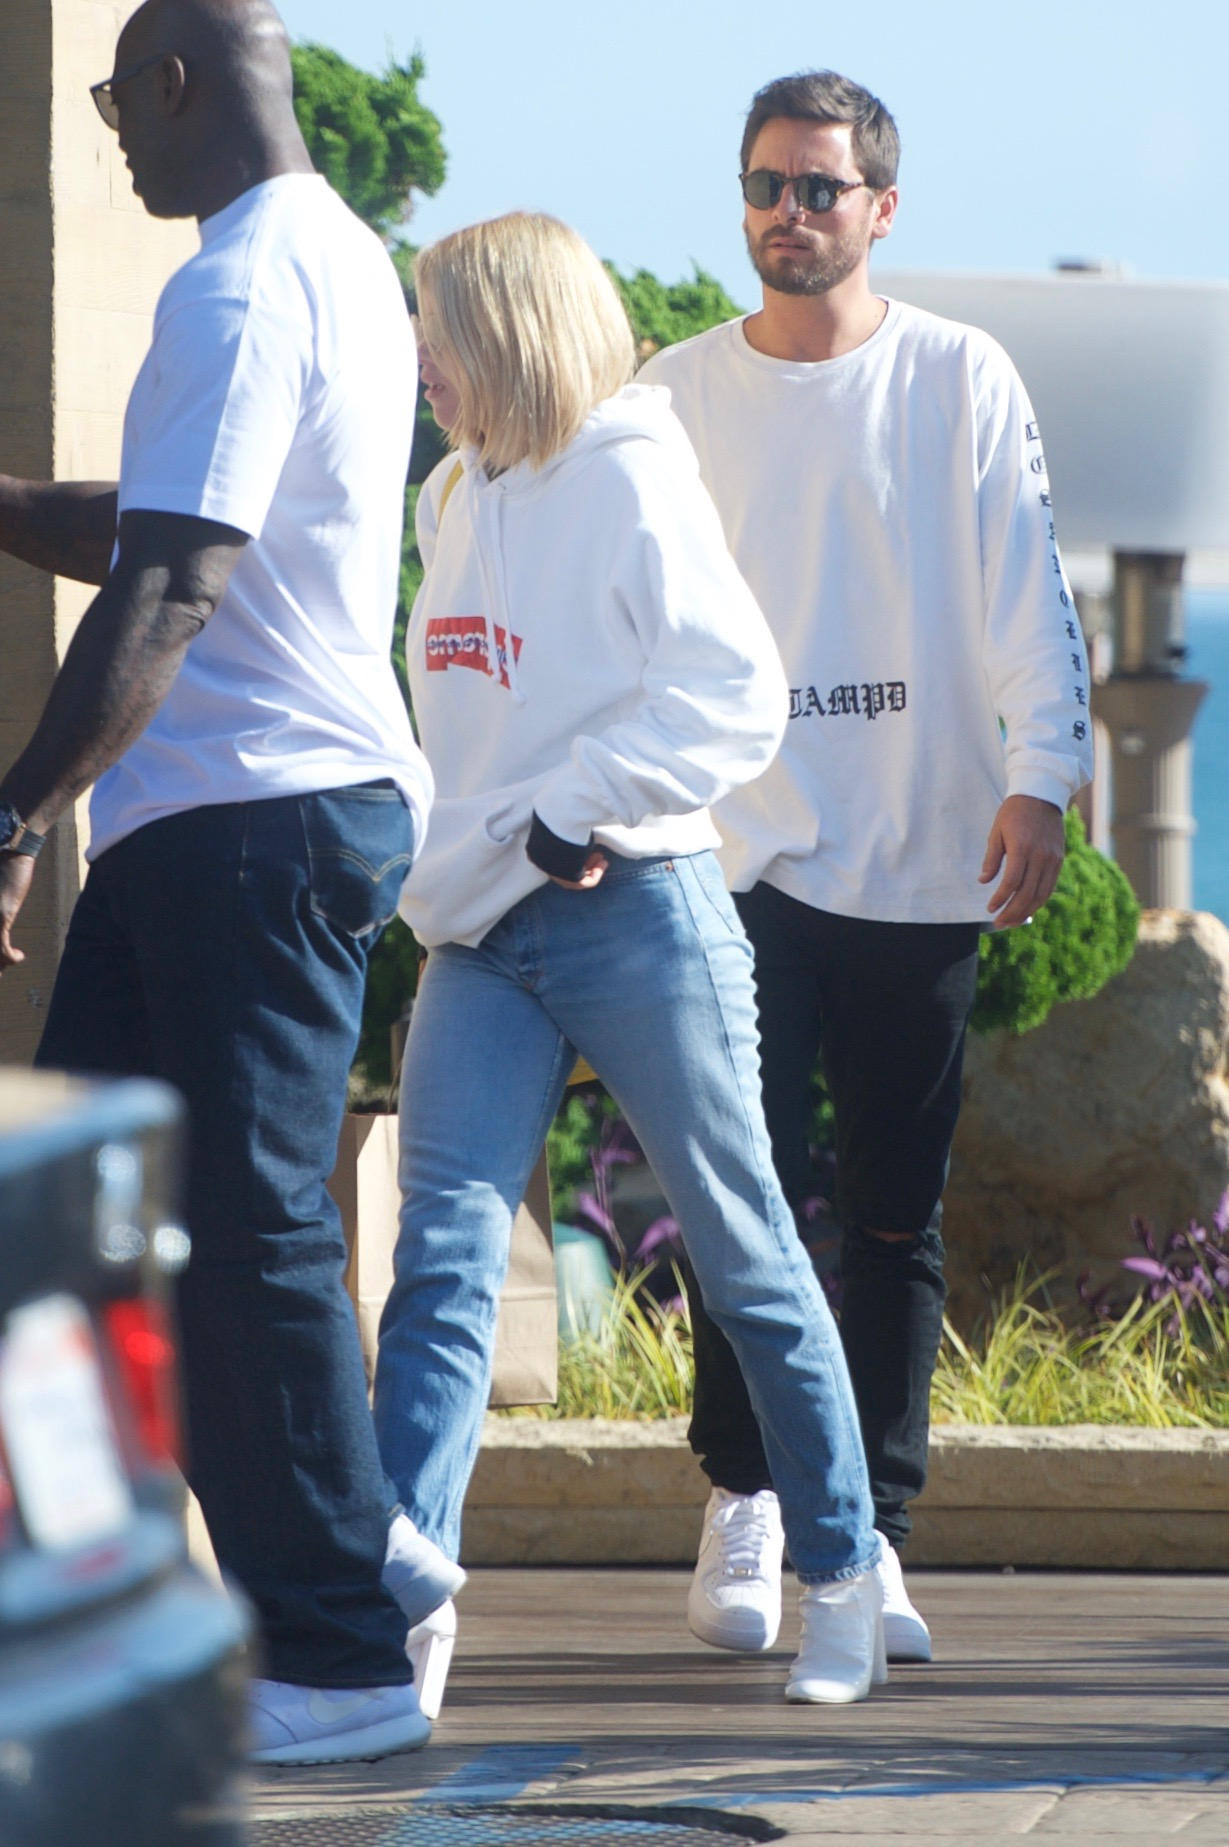 Sofia Richie and Scott Disick are seen leaving from lunch at Nobu in Malibu, CA. <P> Pictured: Sofia Richie and Scott Disick <B>Ref: SPL1579770  150917  </B><BR/> Picture by: Picture Perfect / Splash News<BR/> </P><P> <B>Splash News and Pictures</B><BR/> Los Angeles:310-821-2666<BR/> New York:212-619-2666<BR/> London:870-934-2666<BR/> <span id=